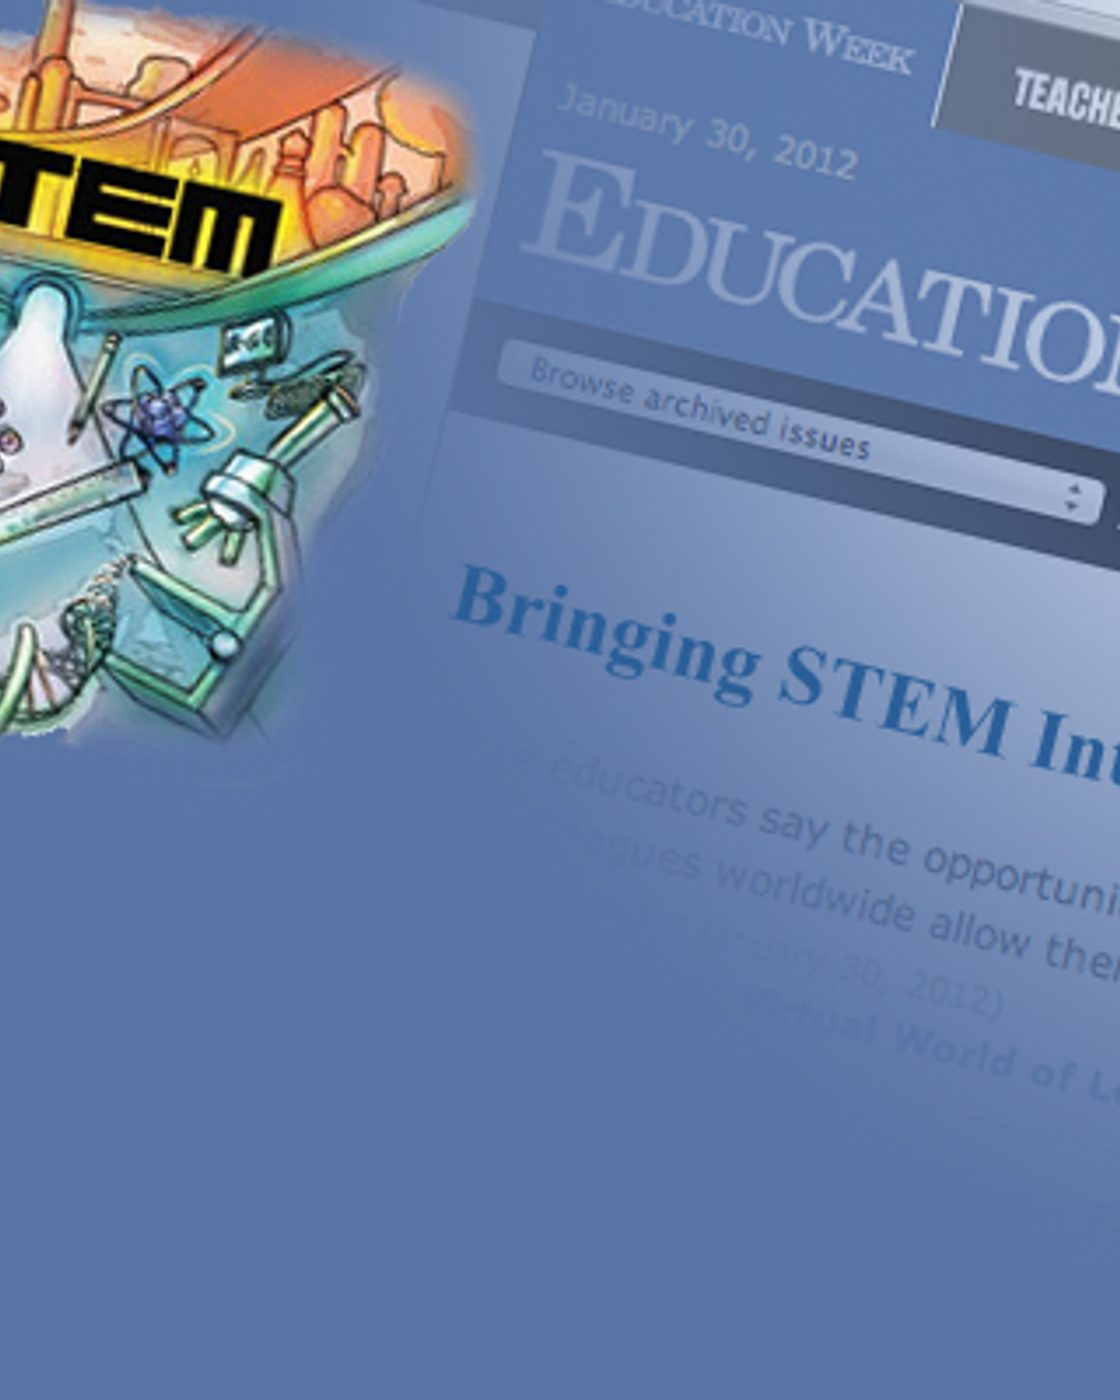 Ed Week Commentary on STEM